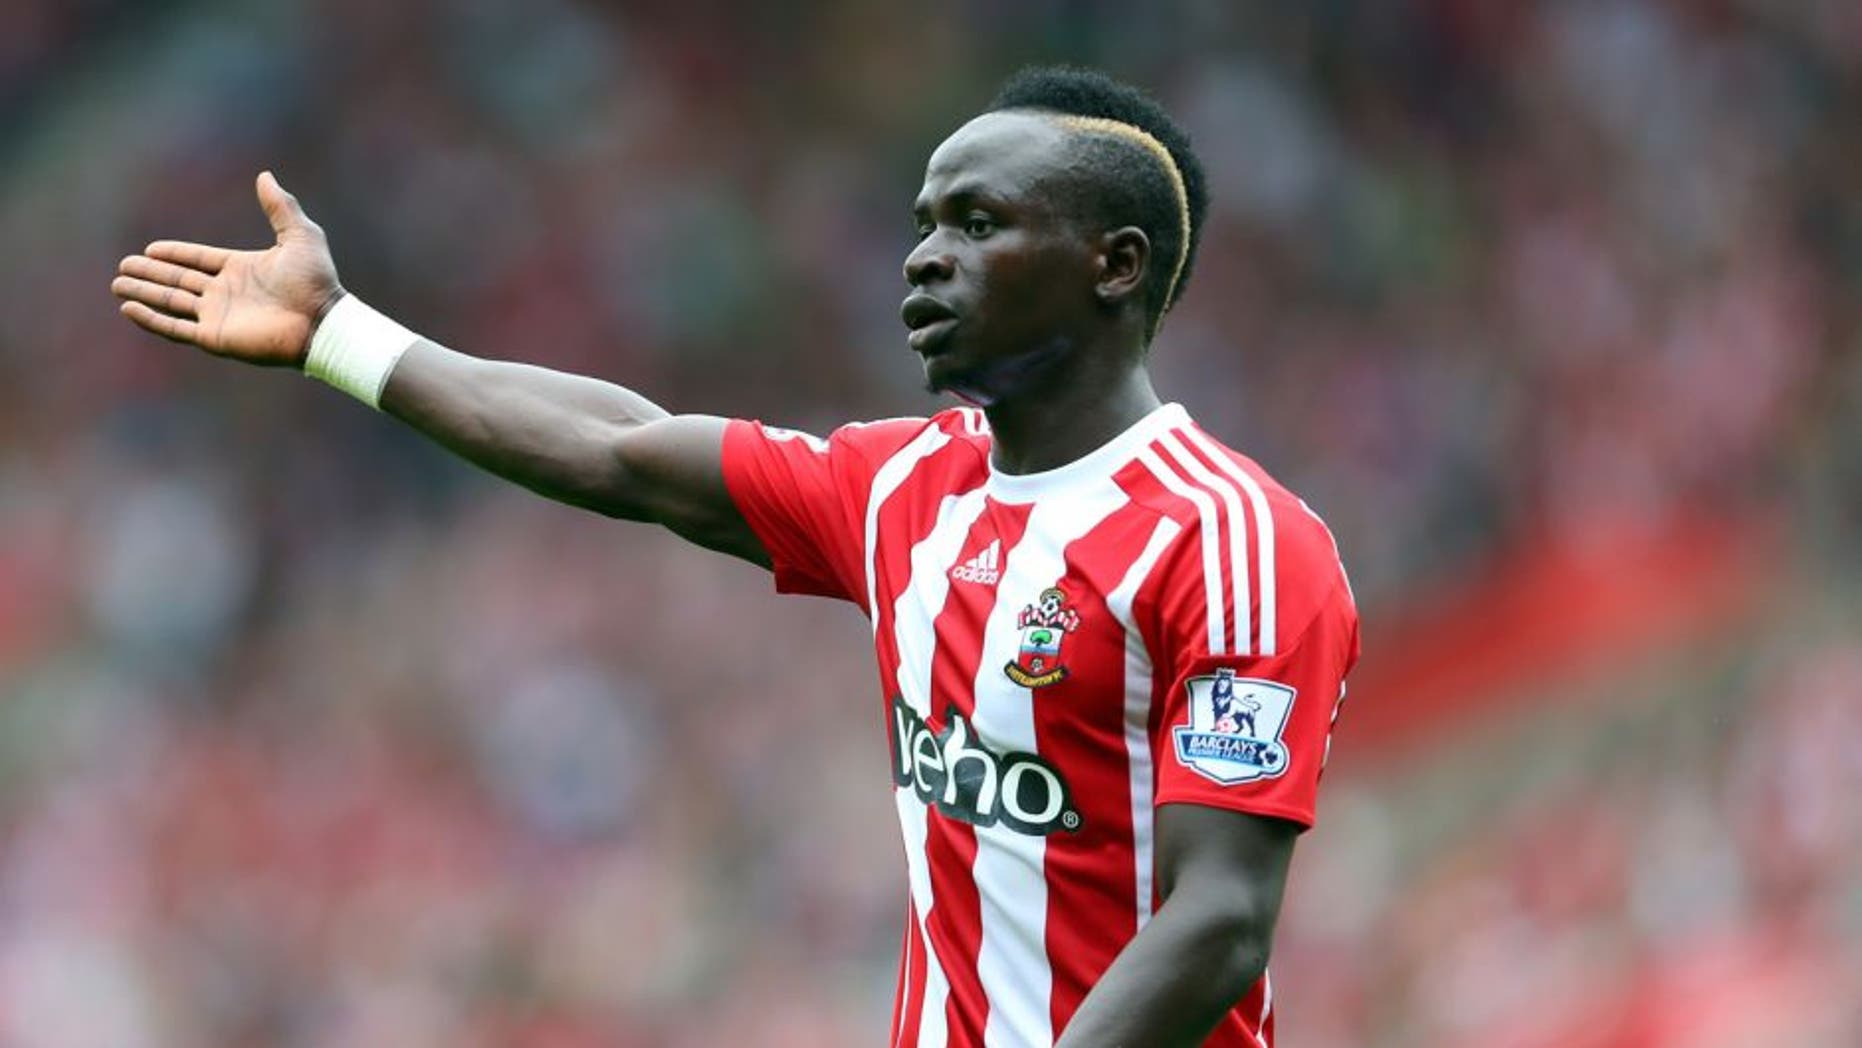 SOUTHAMPTON, ENGLAND - AUGUST 30: Sadio Mane of Southampton gestures during the Barclays Premier League match between Southampton and Norwich City on August 30, 2015 in Southampton, United Kingdom. (Photo by Catherine Ivill - AMA/Getty Images)